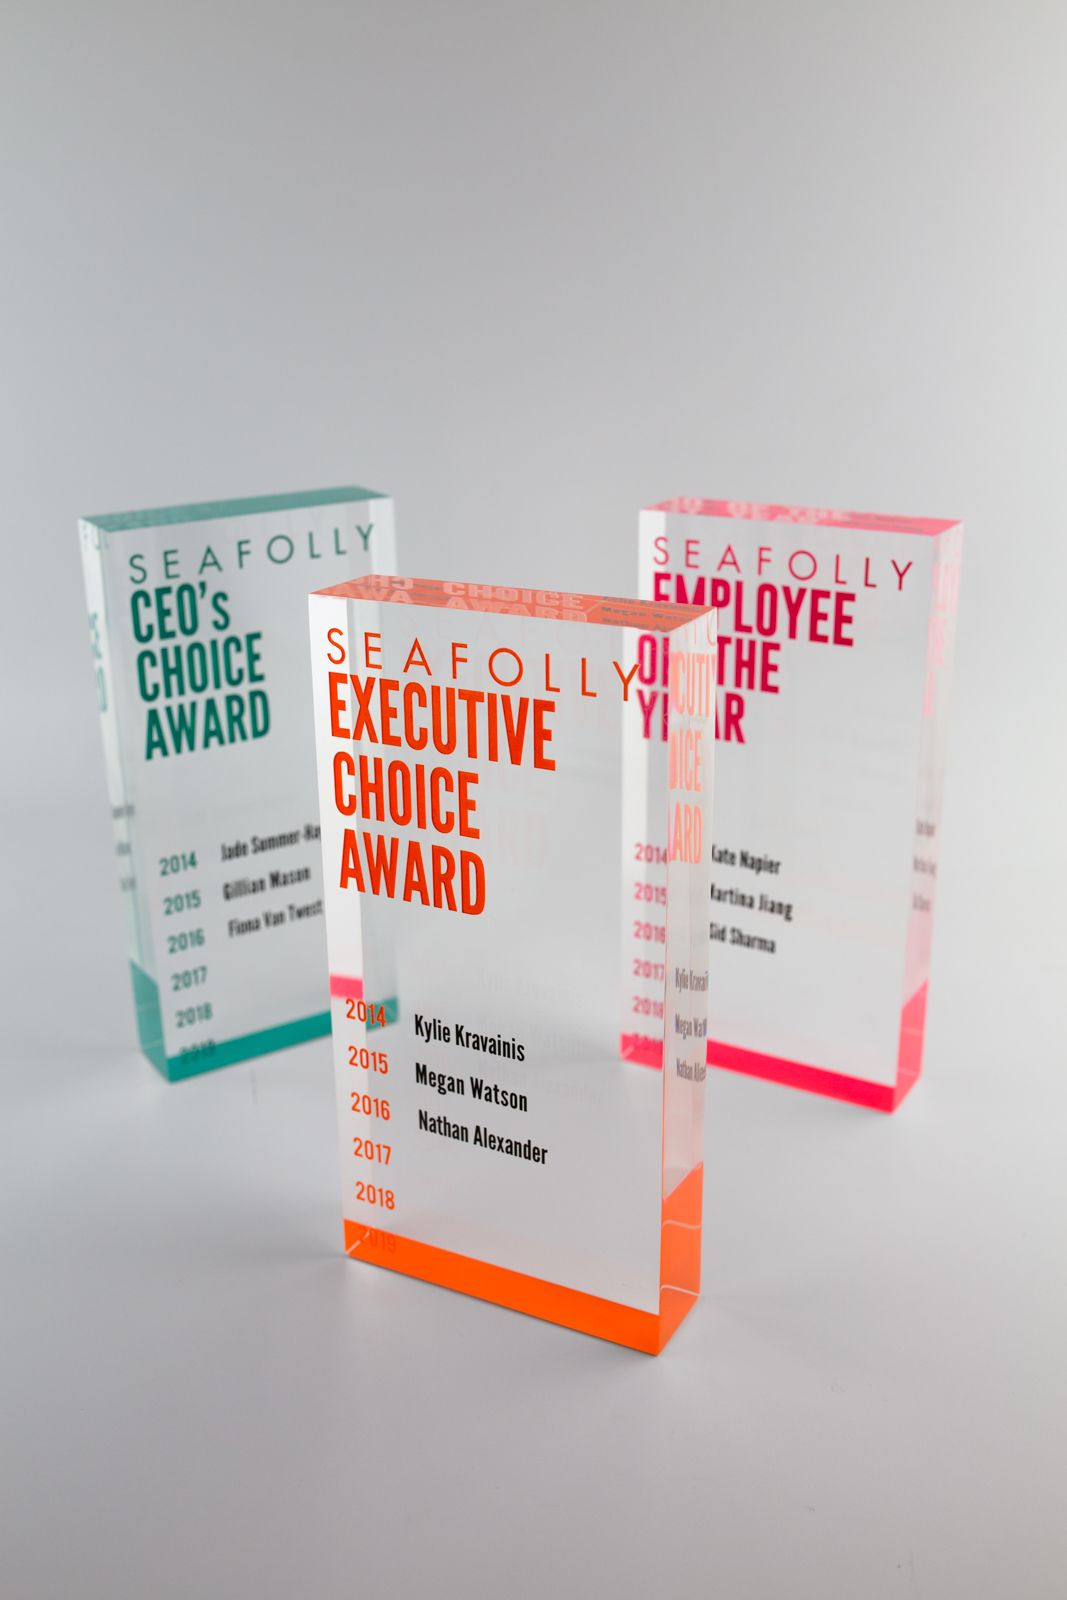 Seafolly Perpetual Trophies   Design Awards   #custommade #colorful #awards